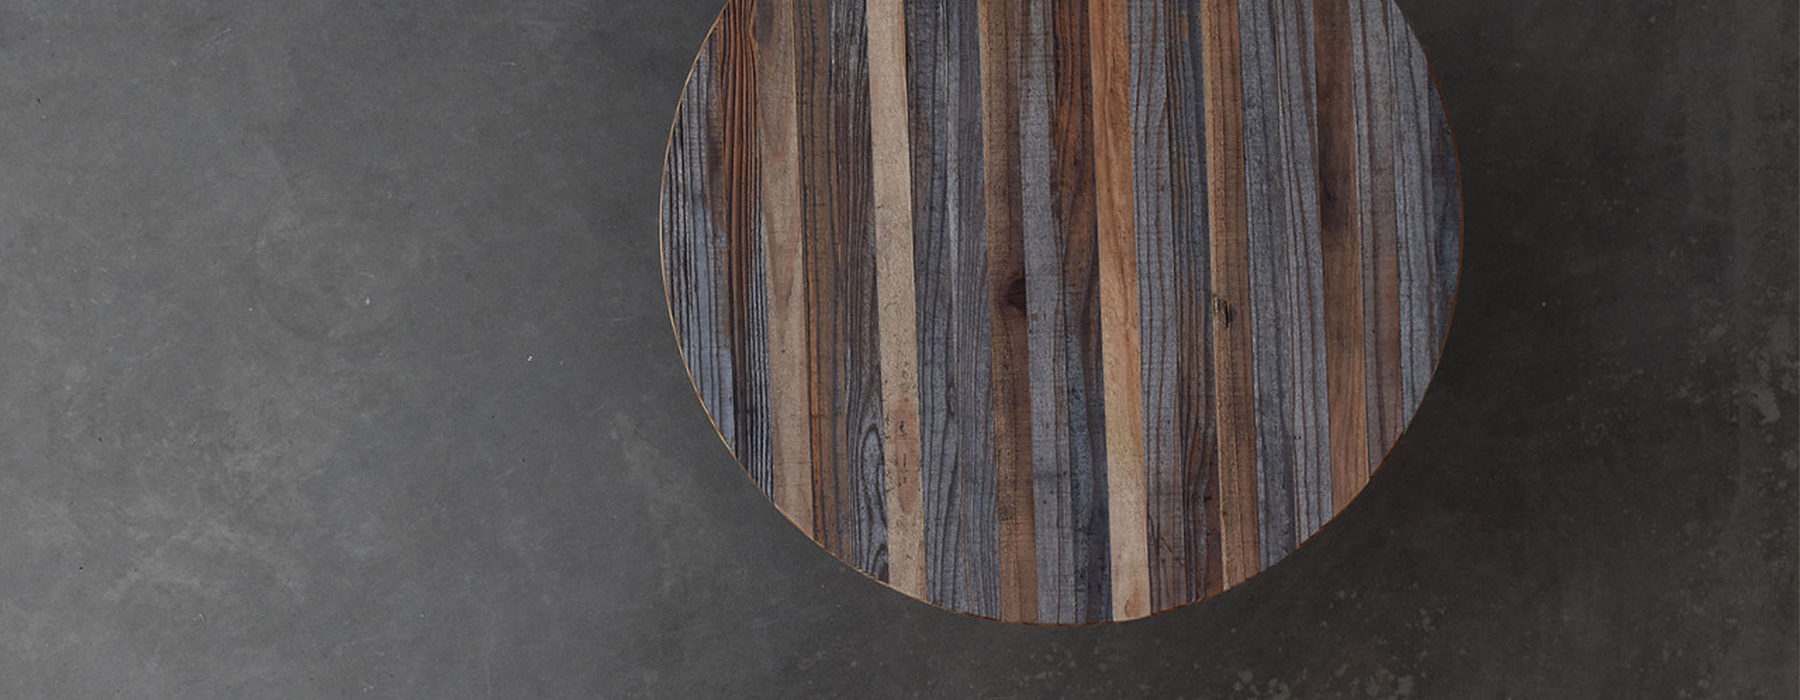 SIX STRIPES TABLE TOP